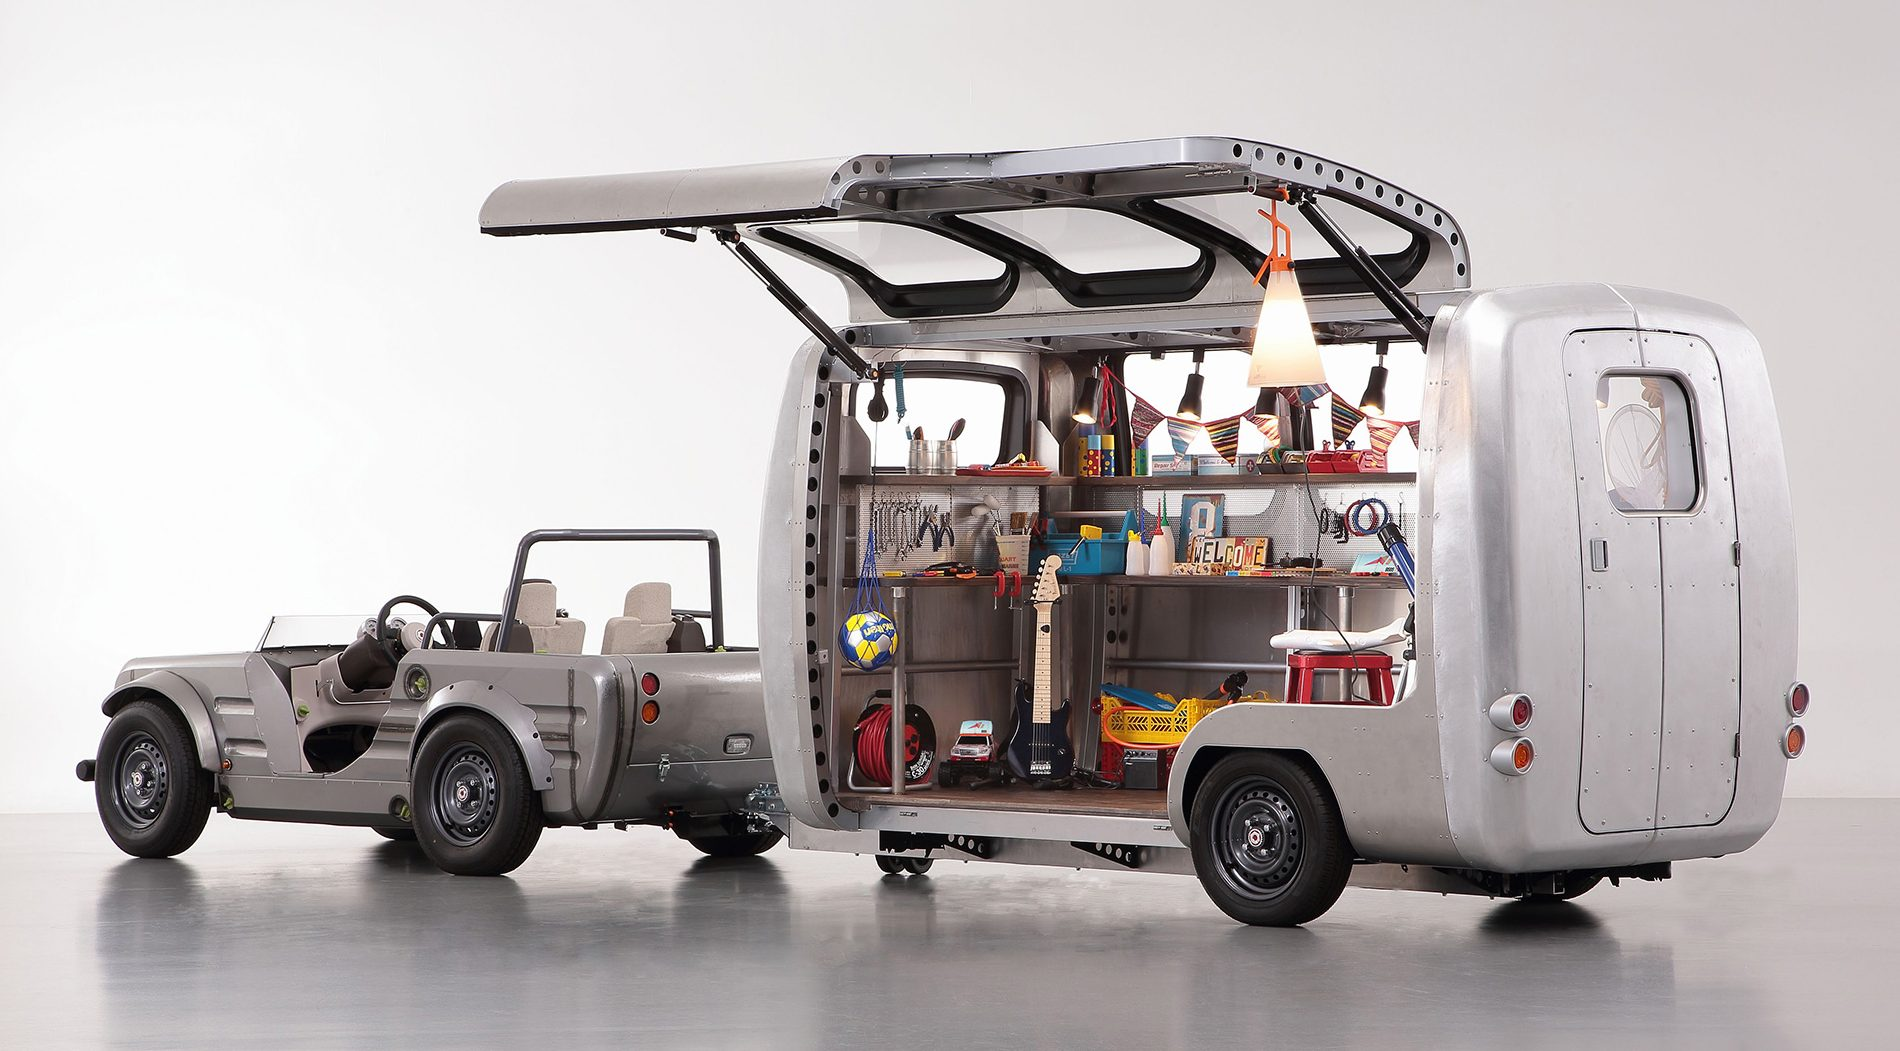 Cars For Kids >> Toyota Camatte Capsule Trailer to introduce kids to cars; interior now customisable as virtual ...